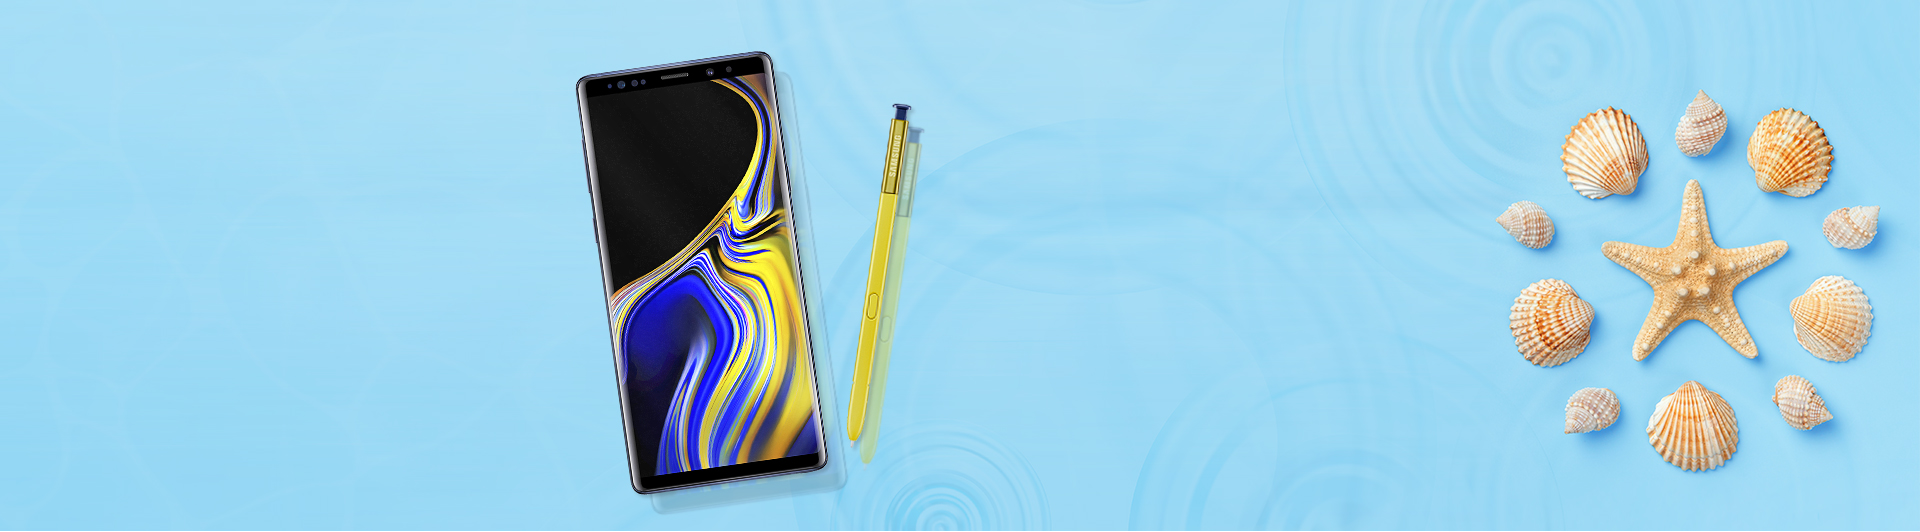 SAMSUNG GALAXY NOTE9 XANH 512GB